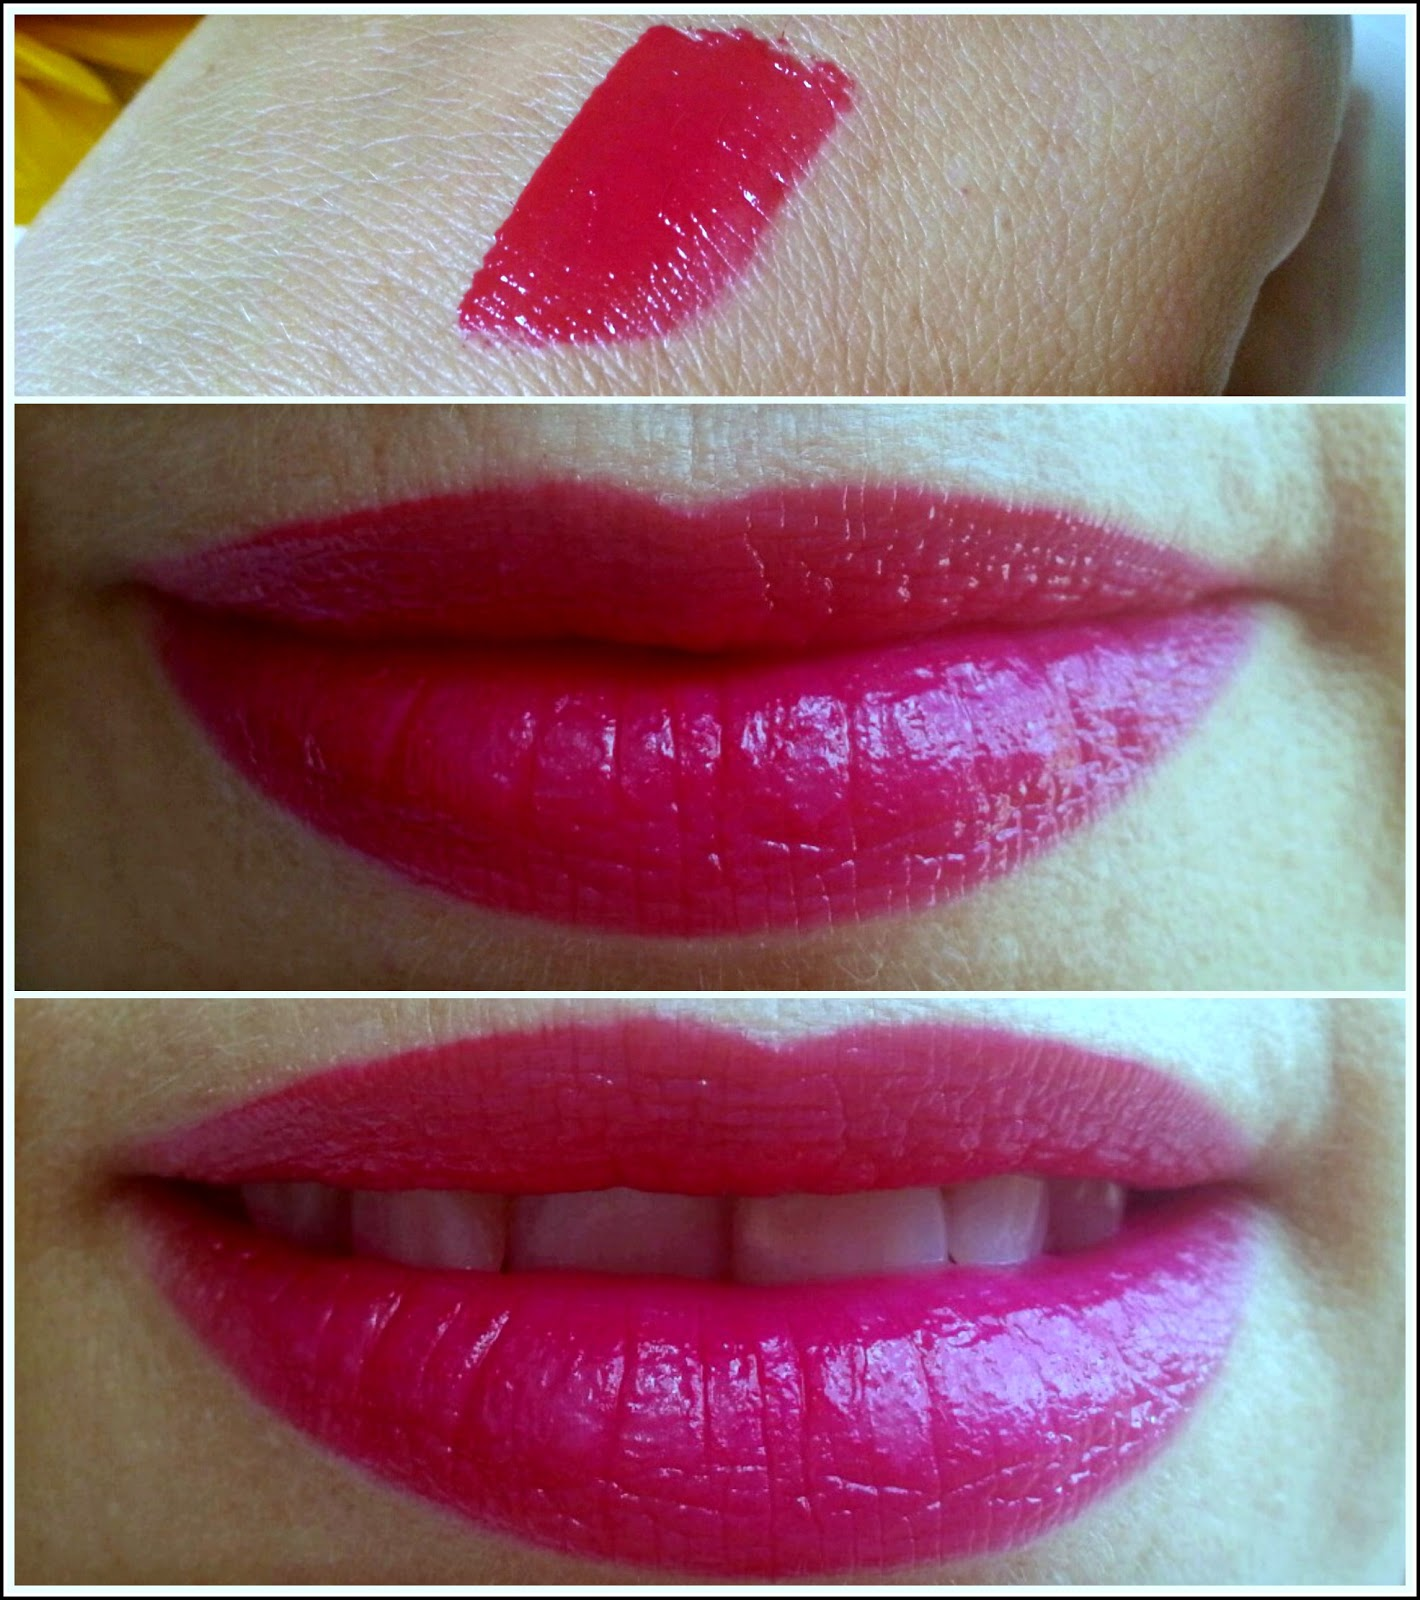 L'Oreal GlamMatte Gloss in Cherry Crop